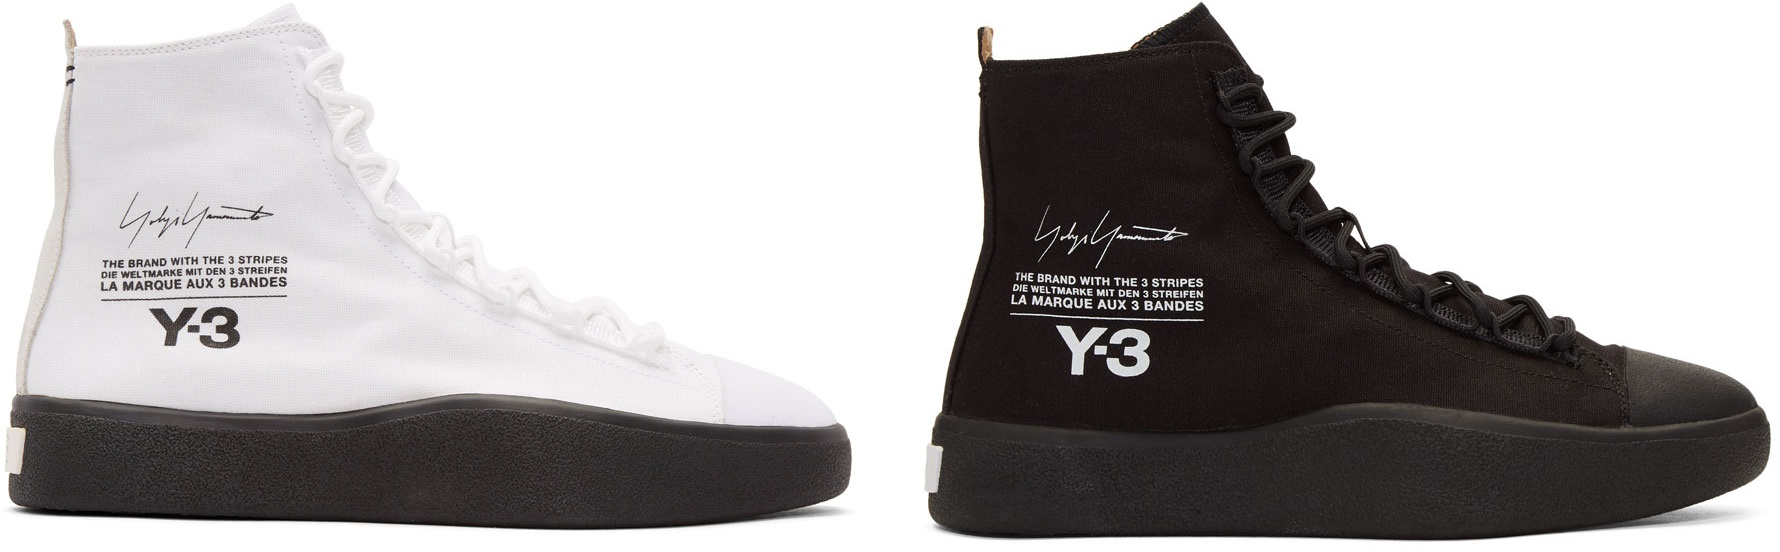 Here are Y-3's White Bashyo High-Top Sneakers